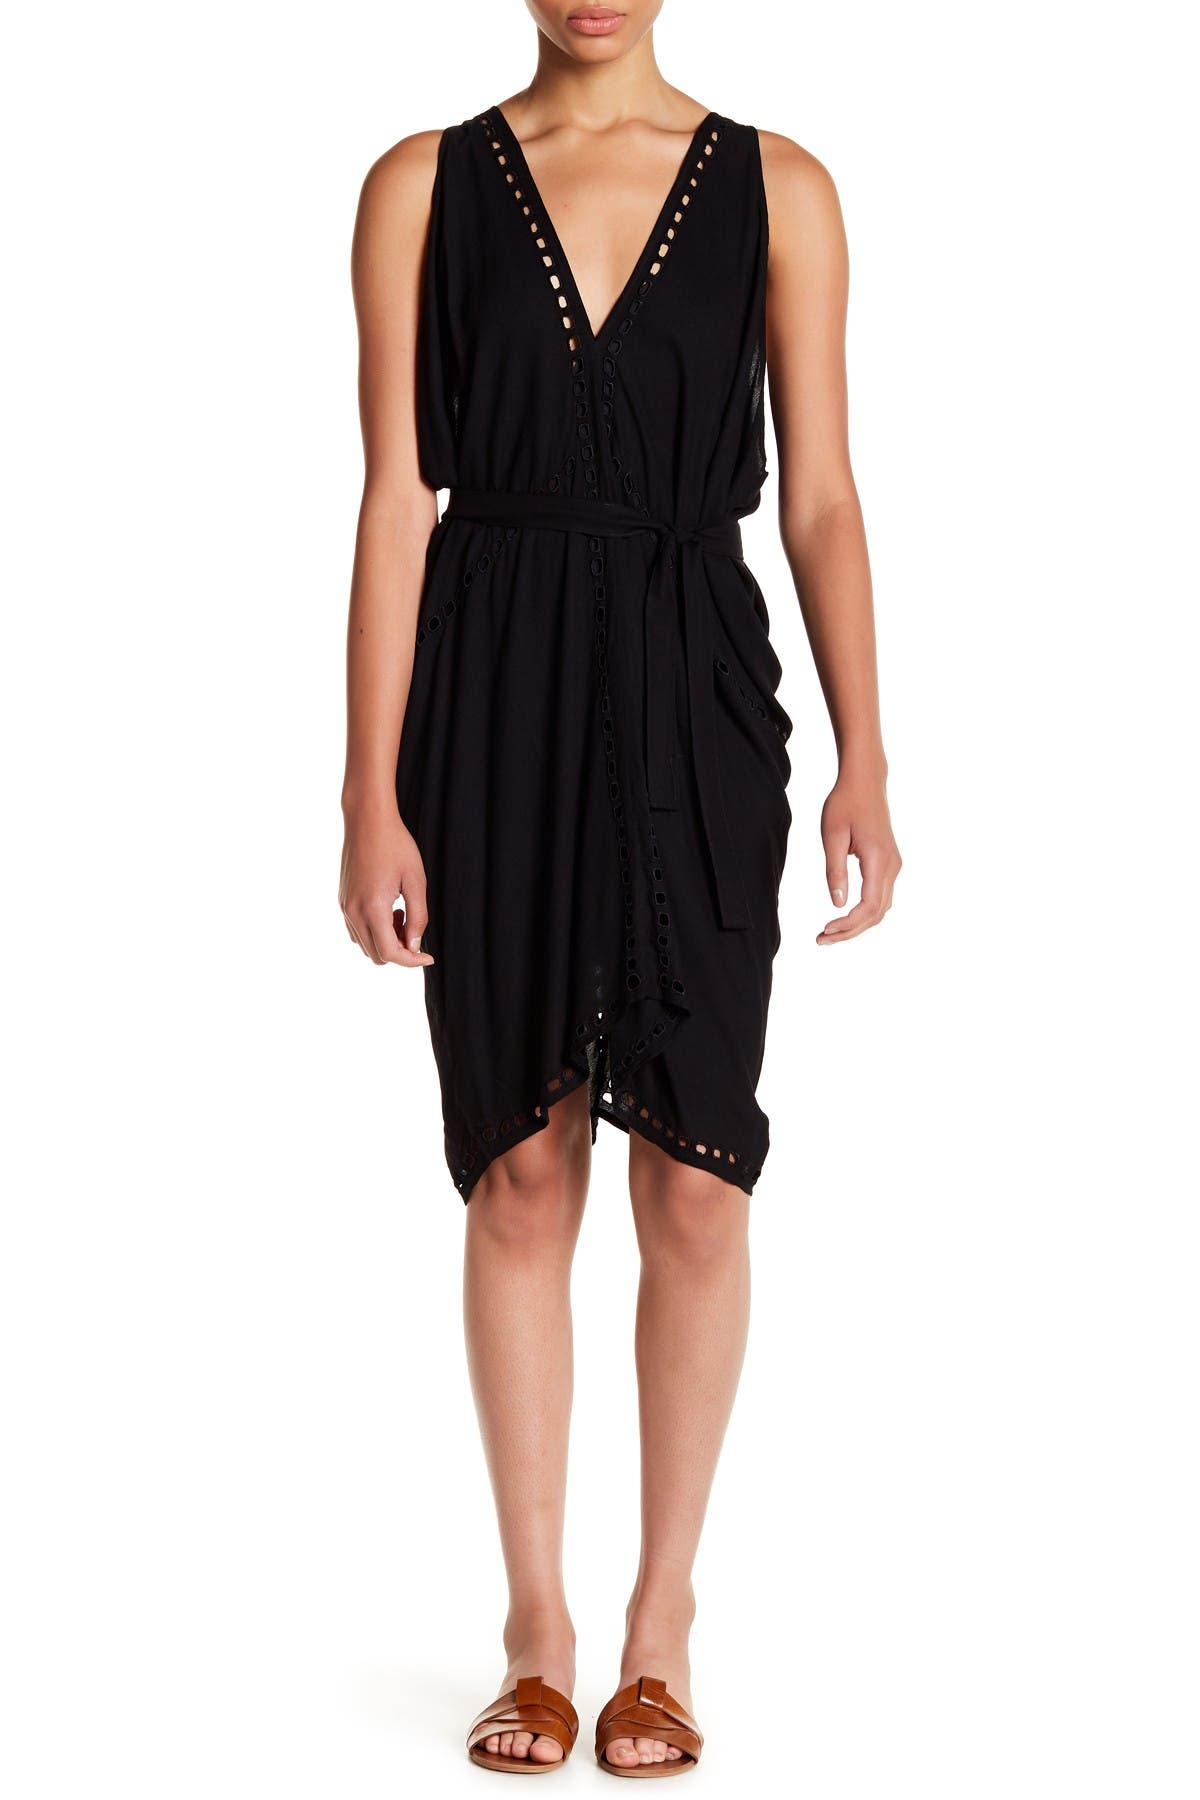 Image of Tiare Hawaii Pert Plunge Eyelet Dress